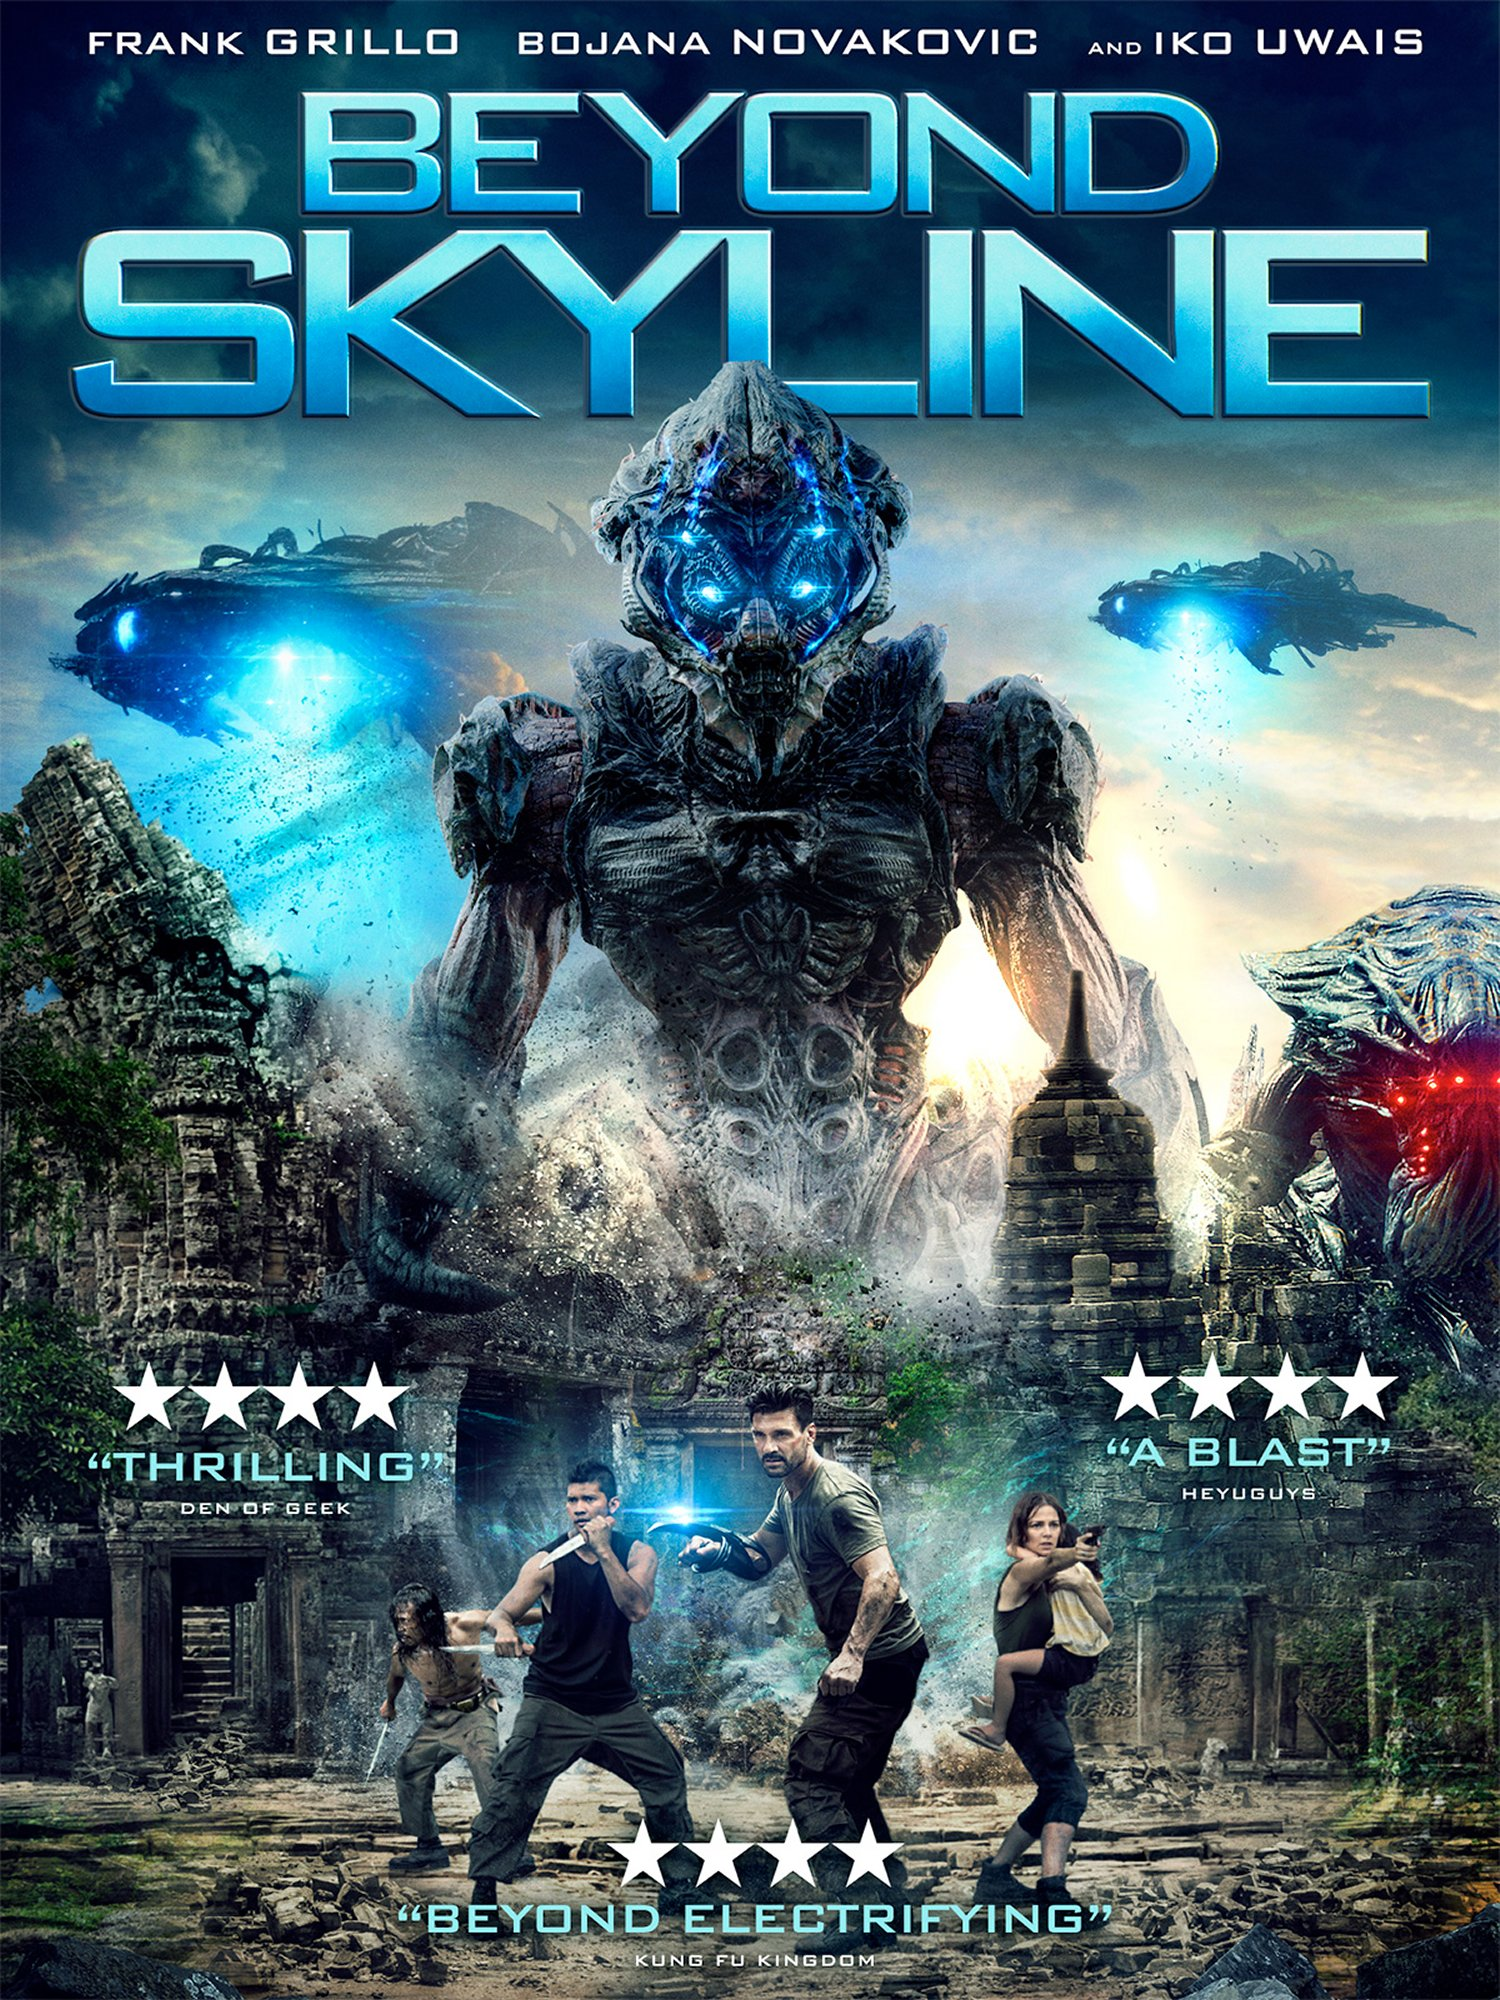 Beyond Skyline Poster Confusions And Connections